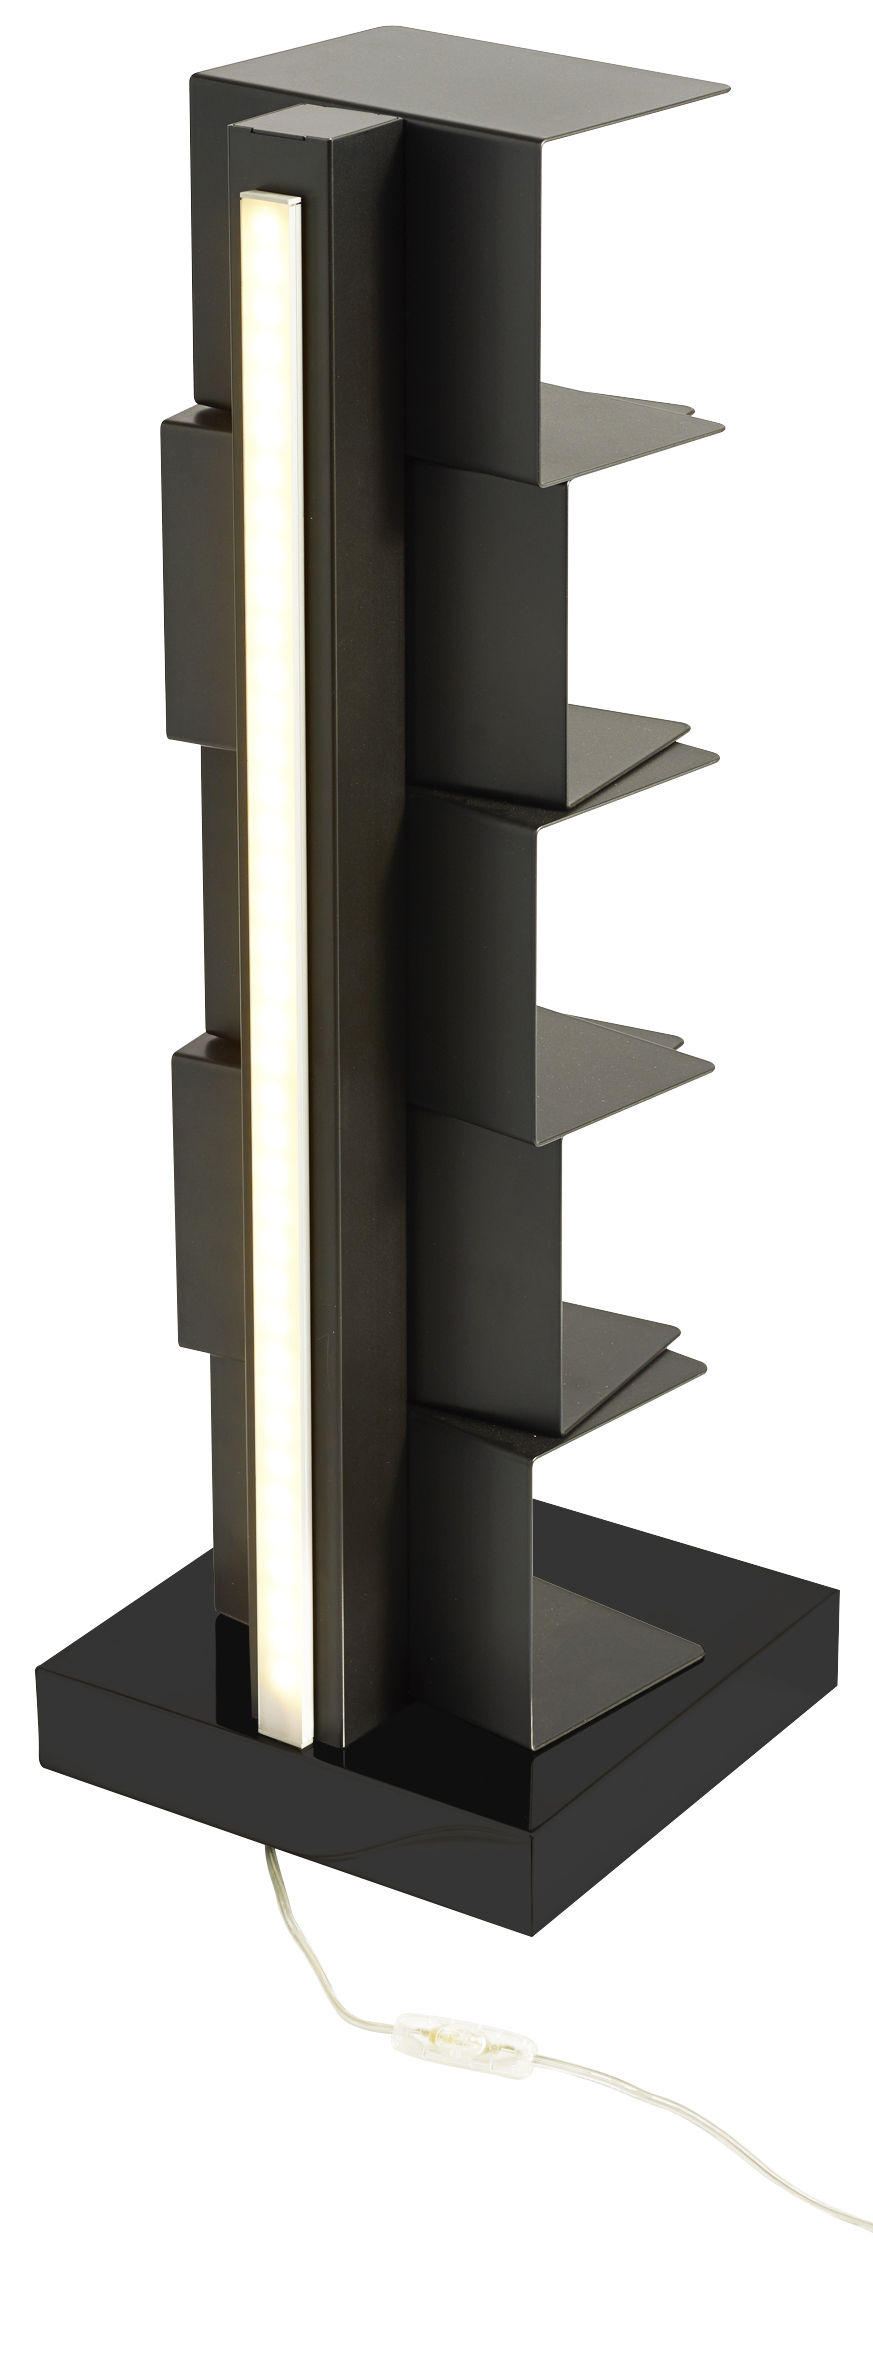 Furniture - Bookcases & Bookshelves - Ptolomeo Luce Luminous bookcase by Opinion Ciatti - Black - Lacquered steel